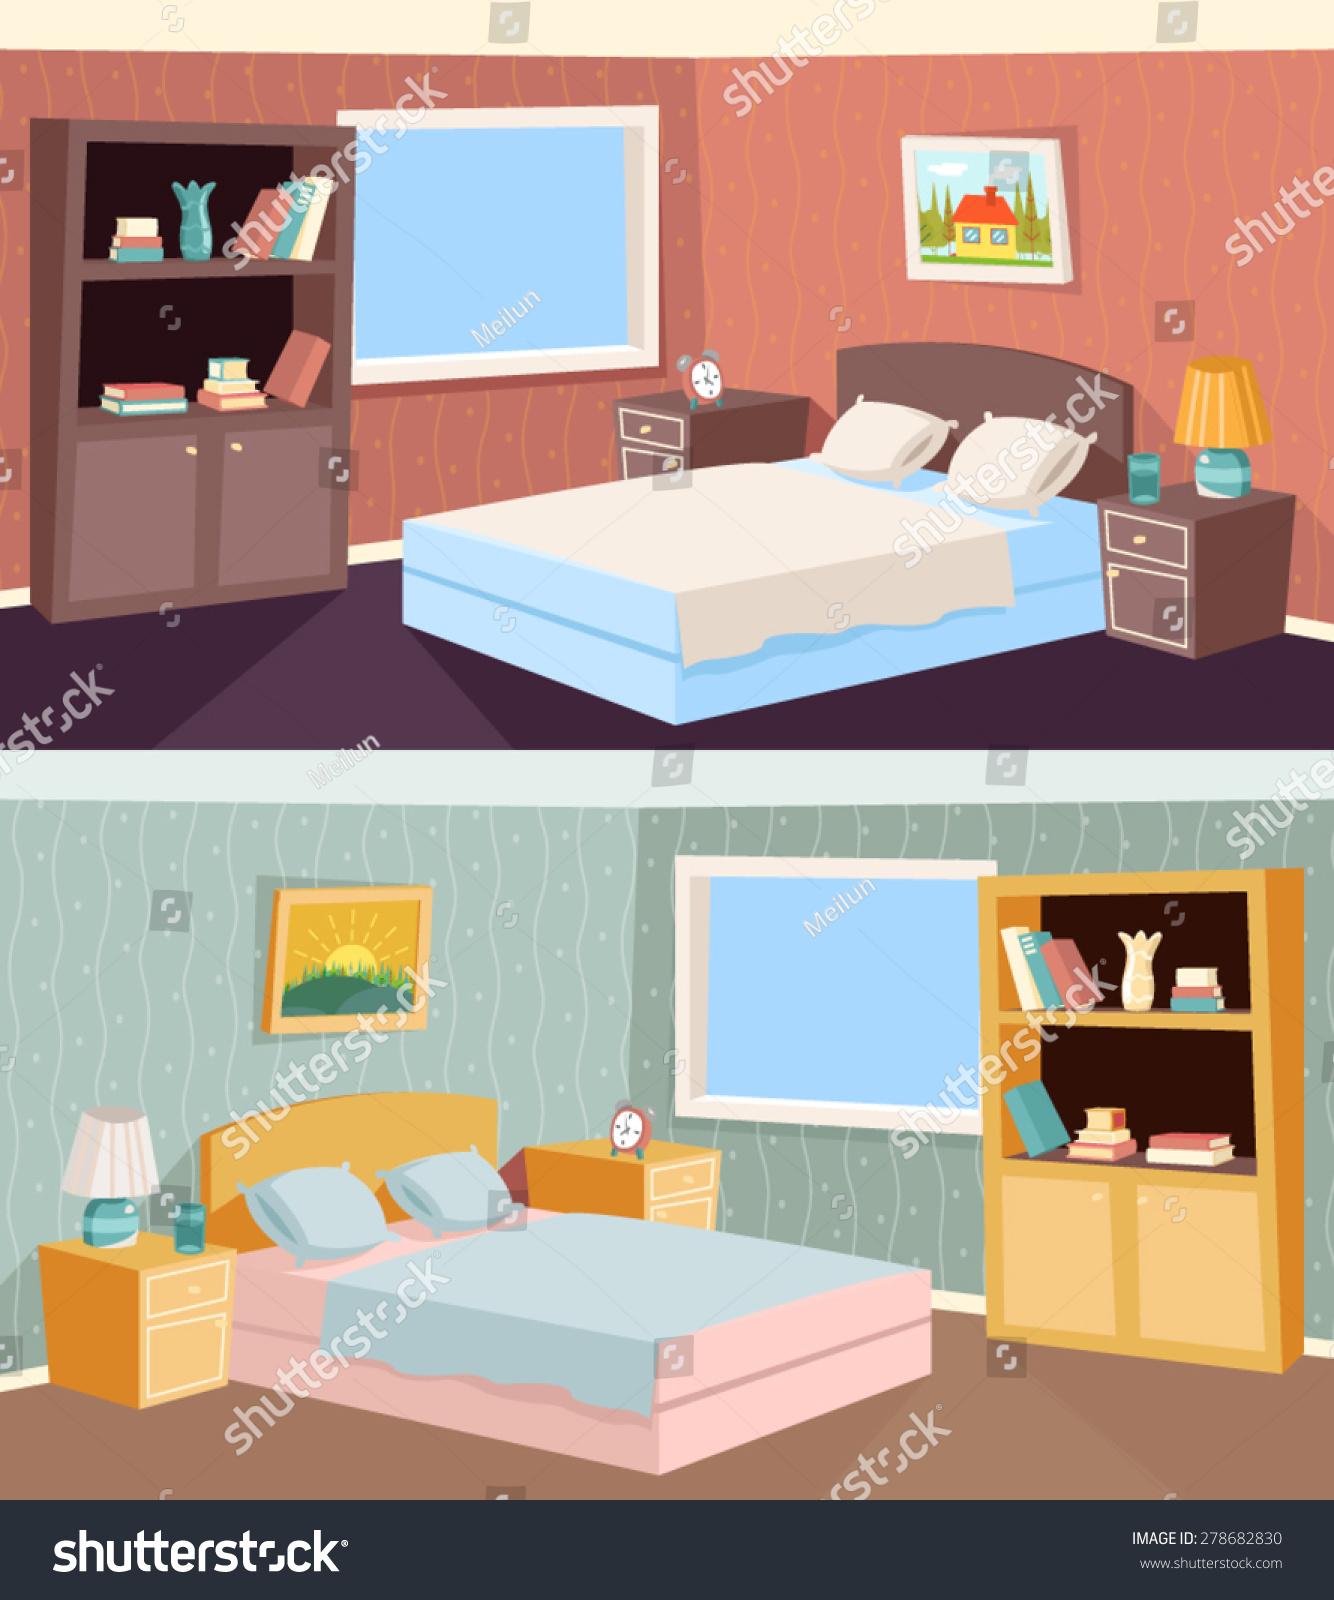 Dessin Lit Double Cartoon Bedroom Apartment Living Room Interior House Room